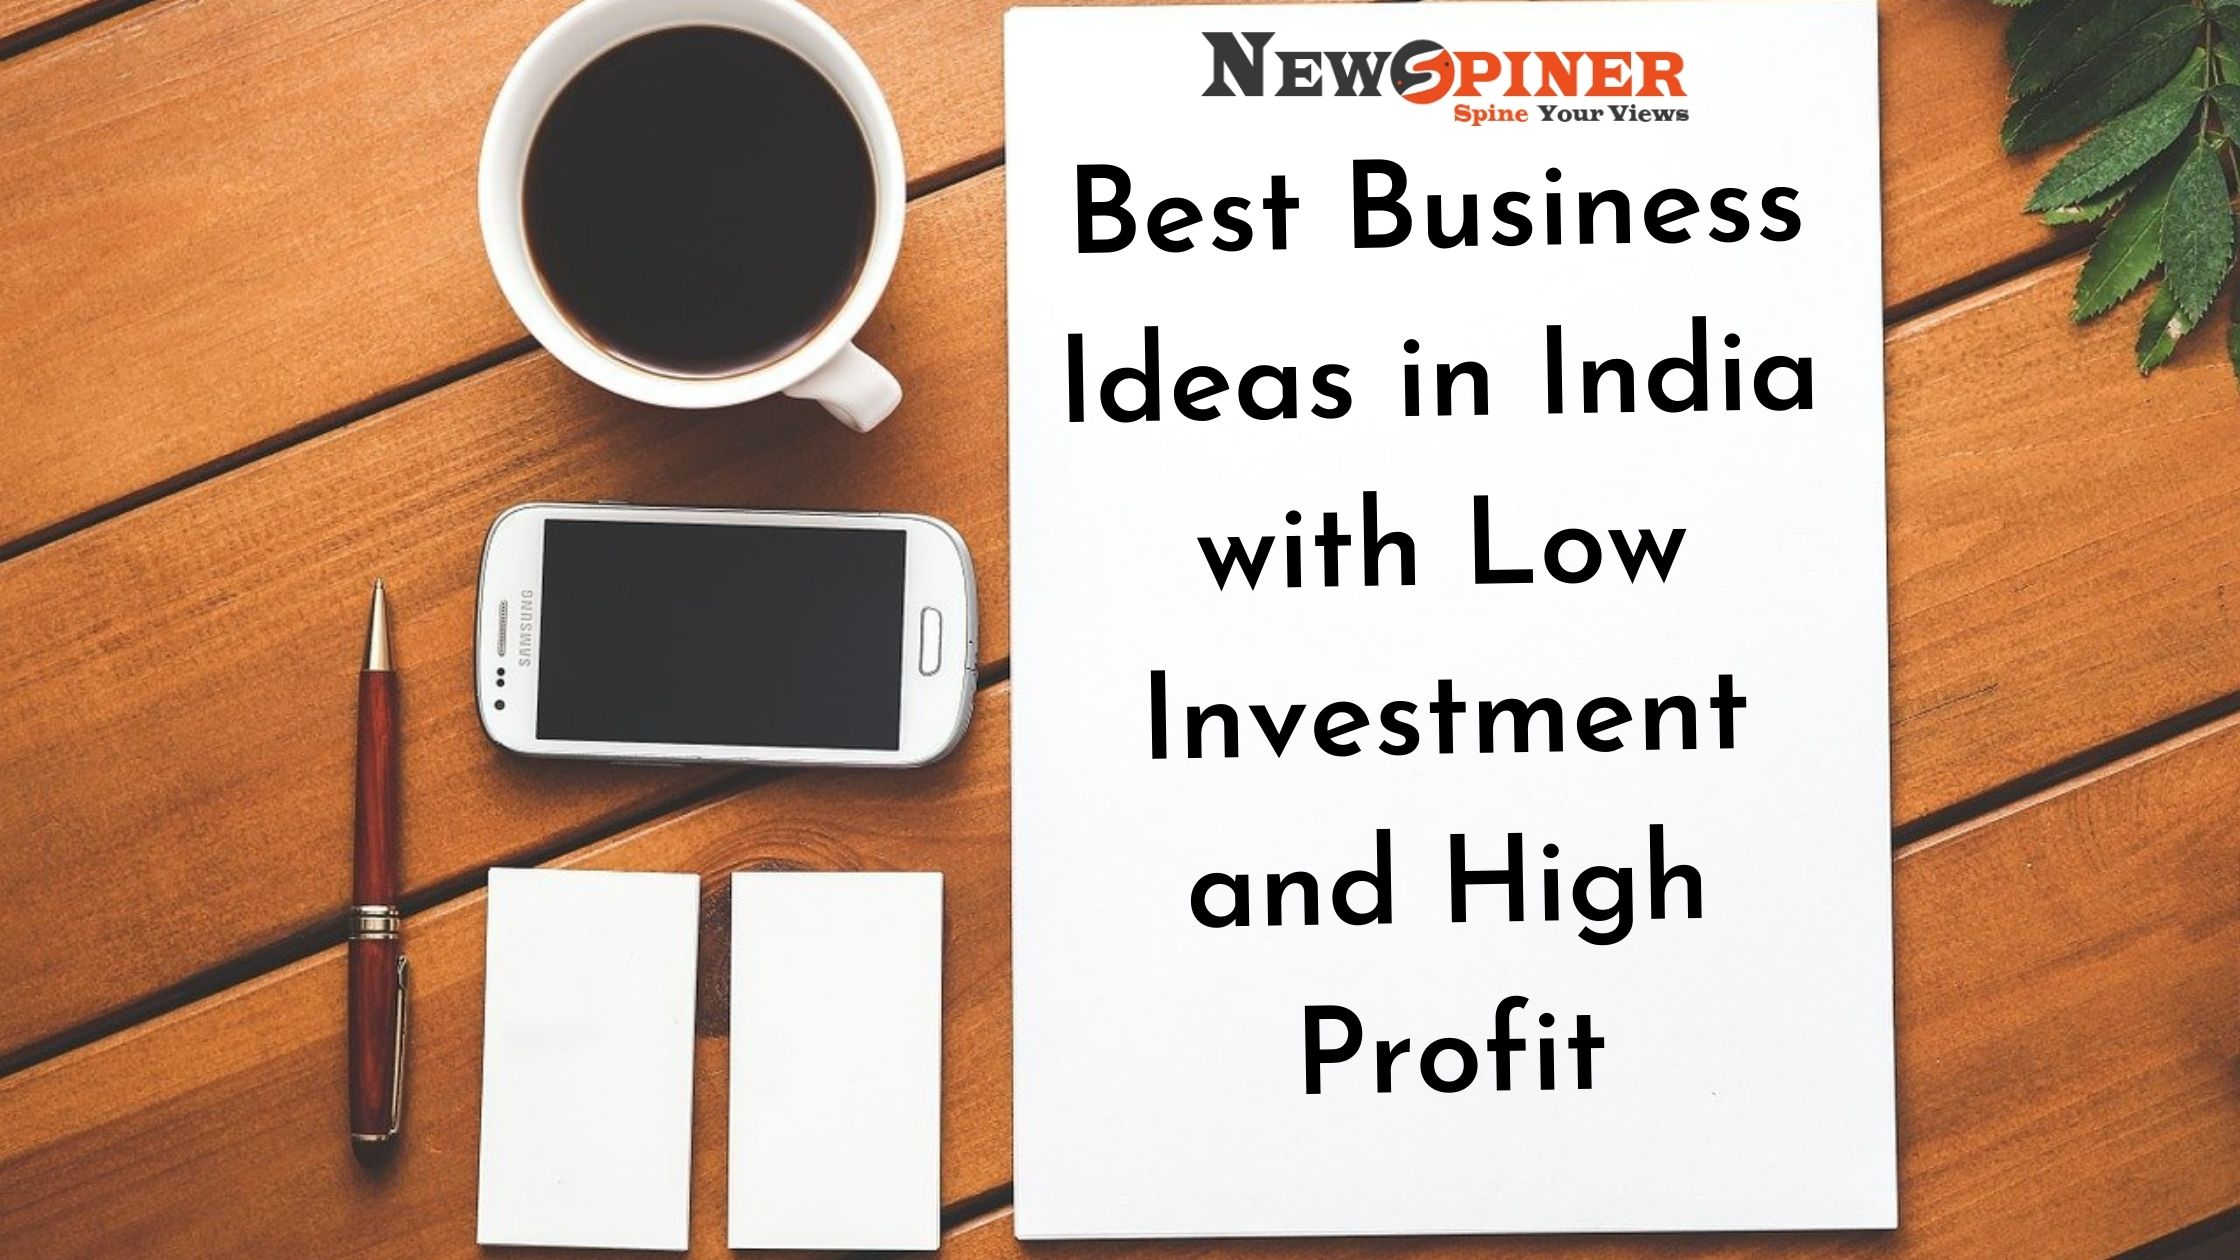 Best Business Ideas in India with Low Investment and High Profit